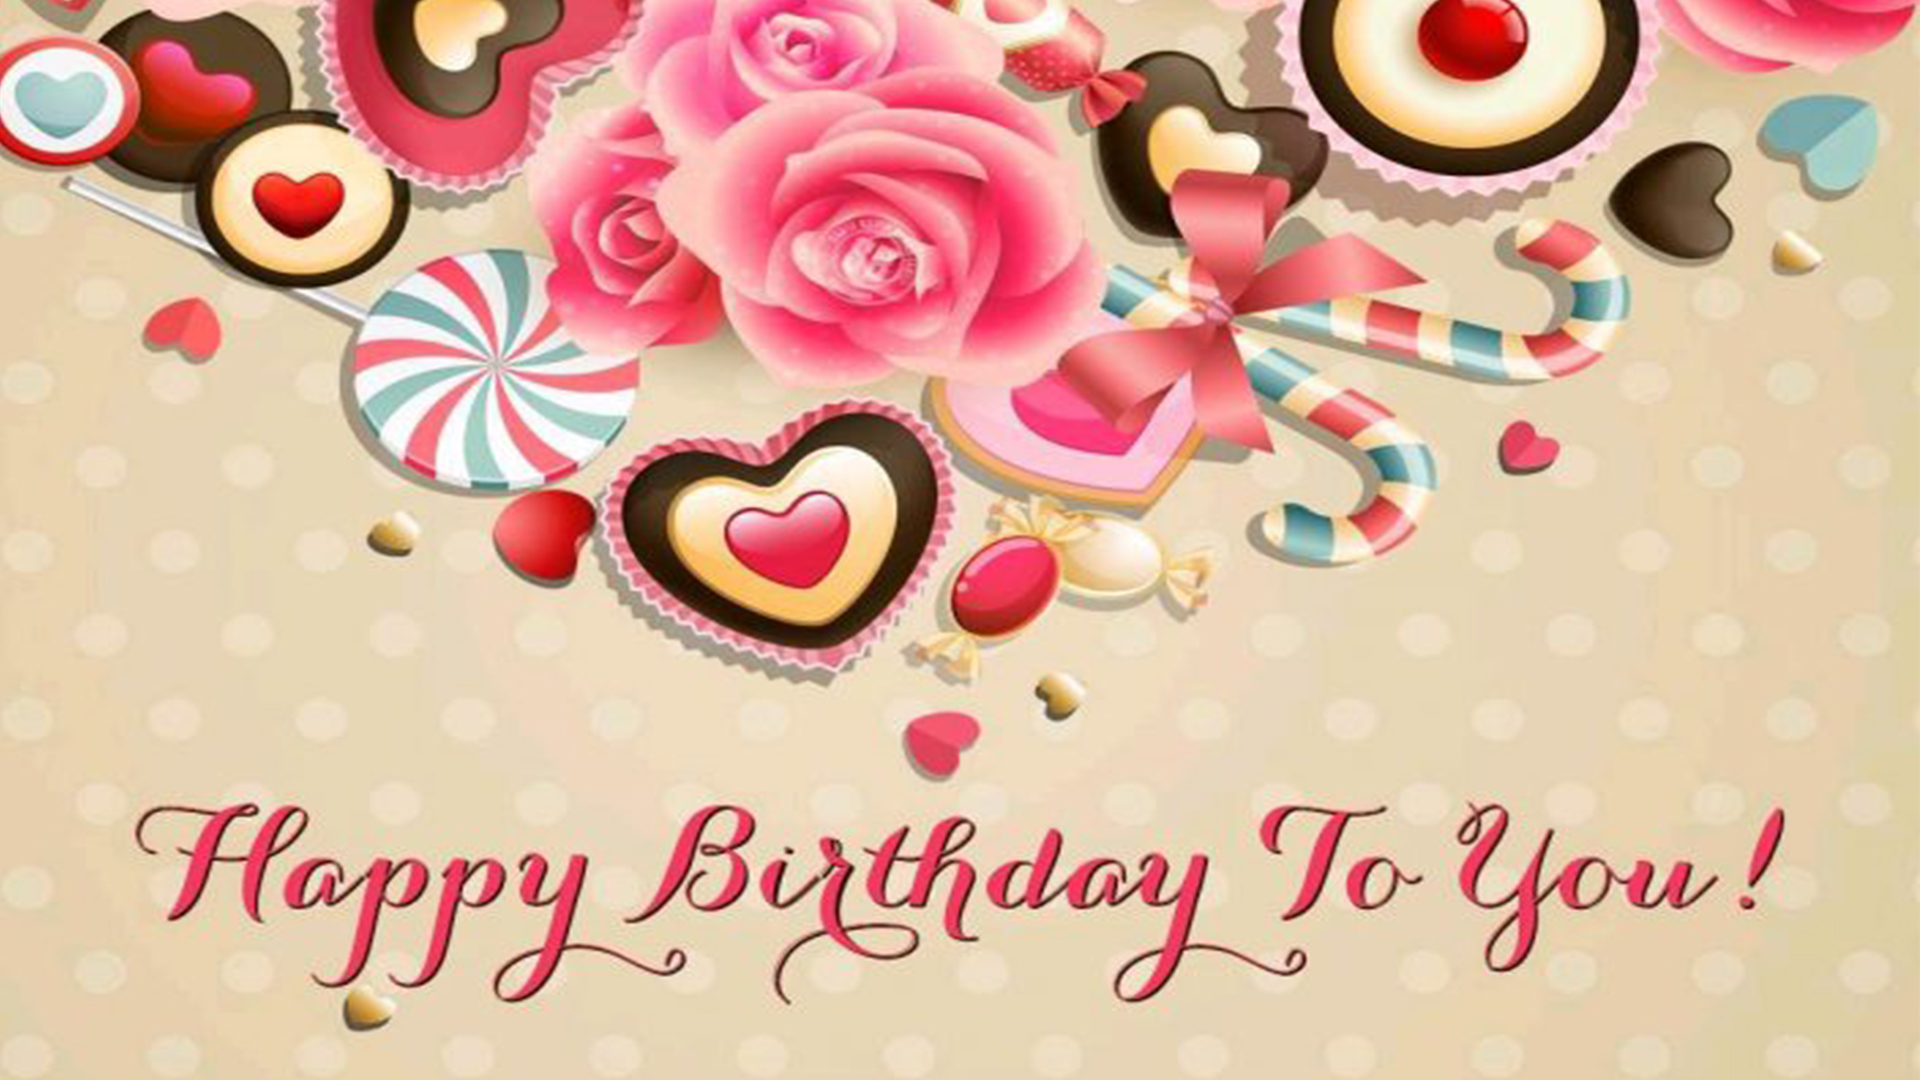 Birthday Greetings Images 2018 Happy Birthday Images Free Download